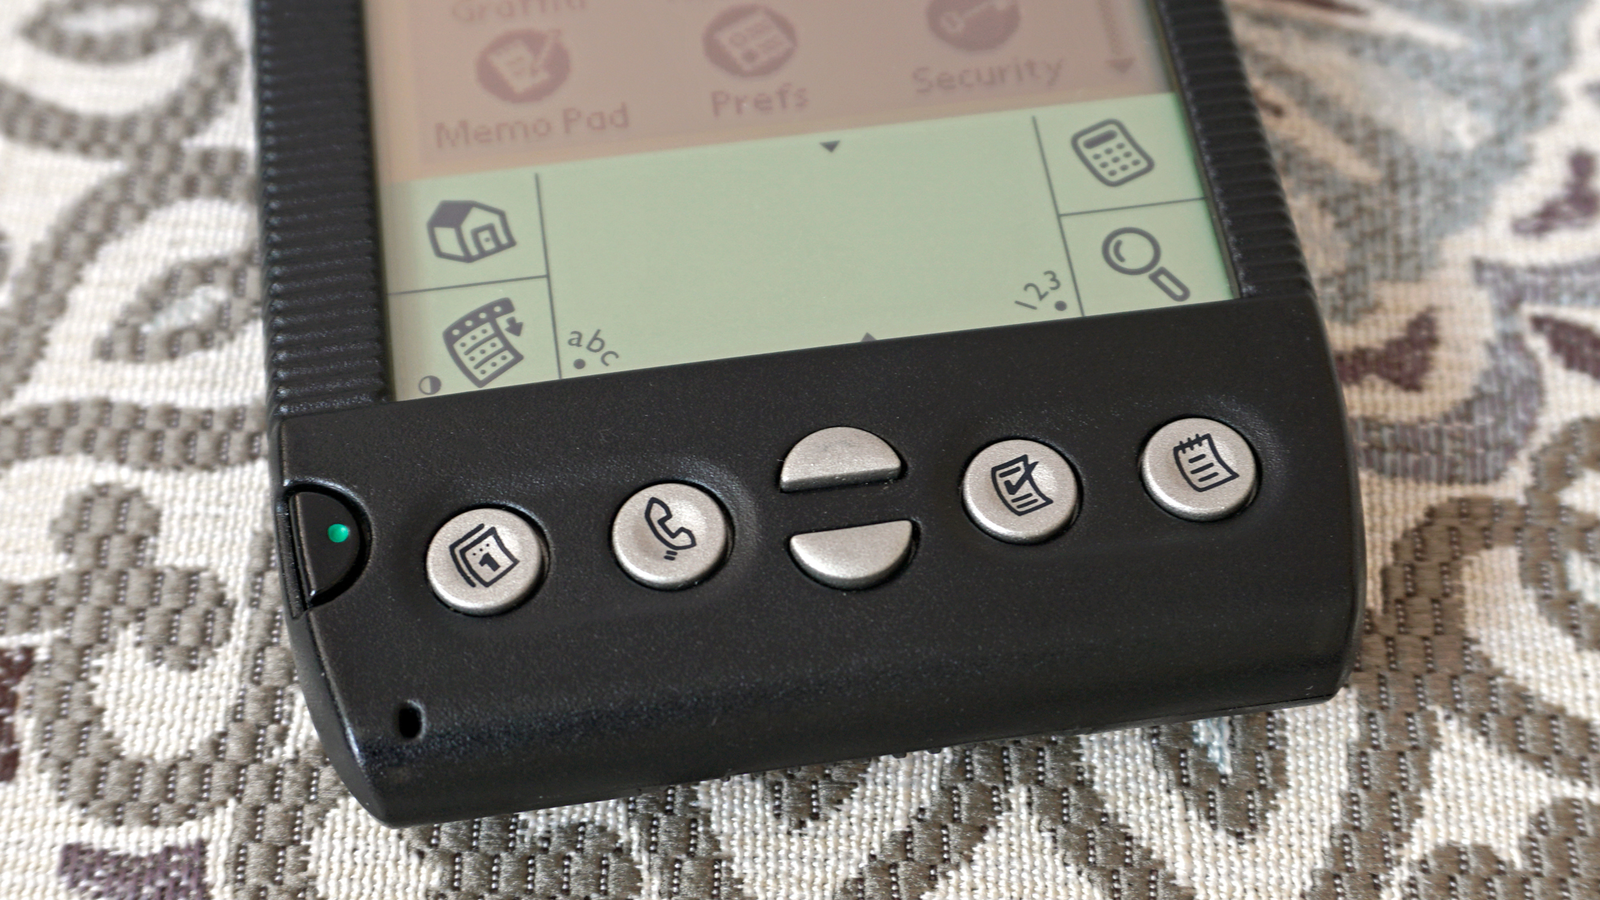 PDA makers were always generous with buttons, providing shortcuts to a device's most commonly used apps.